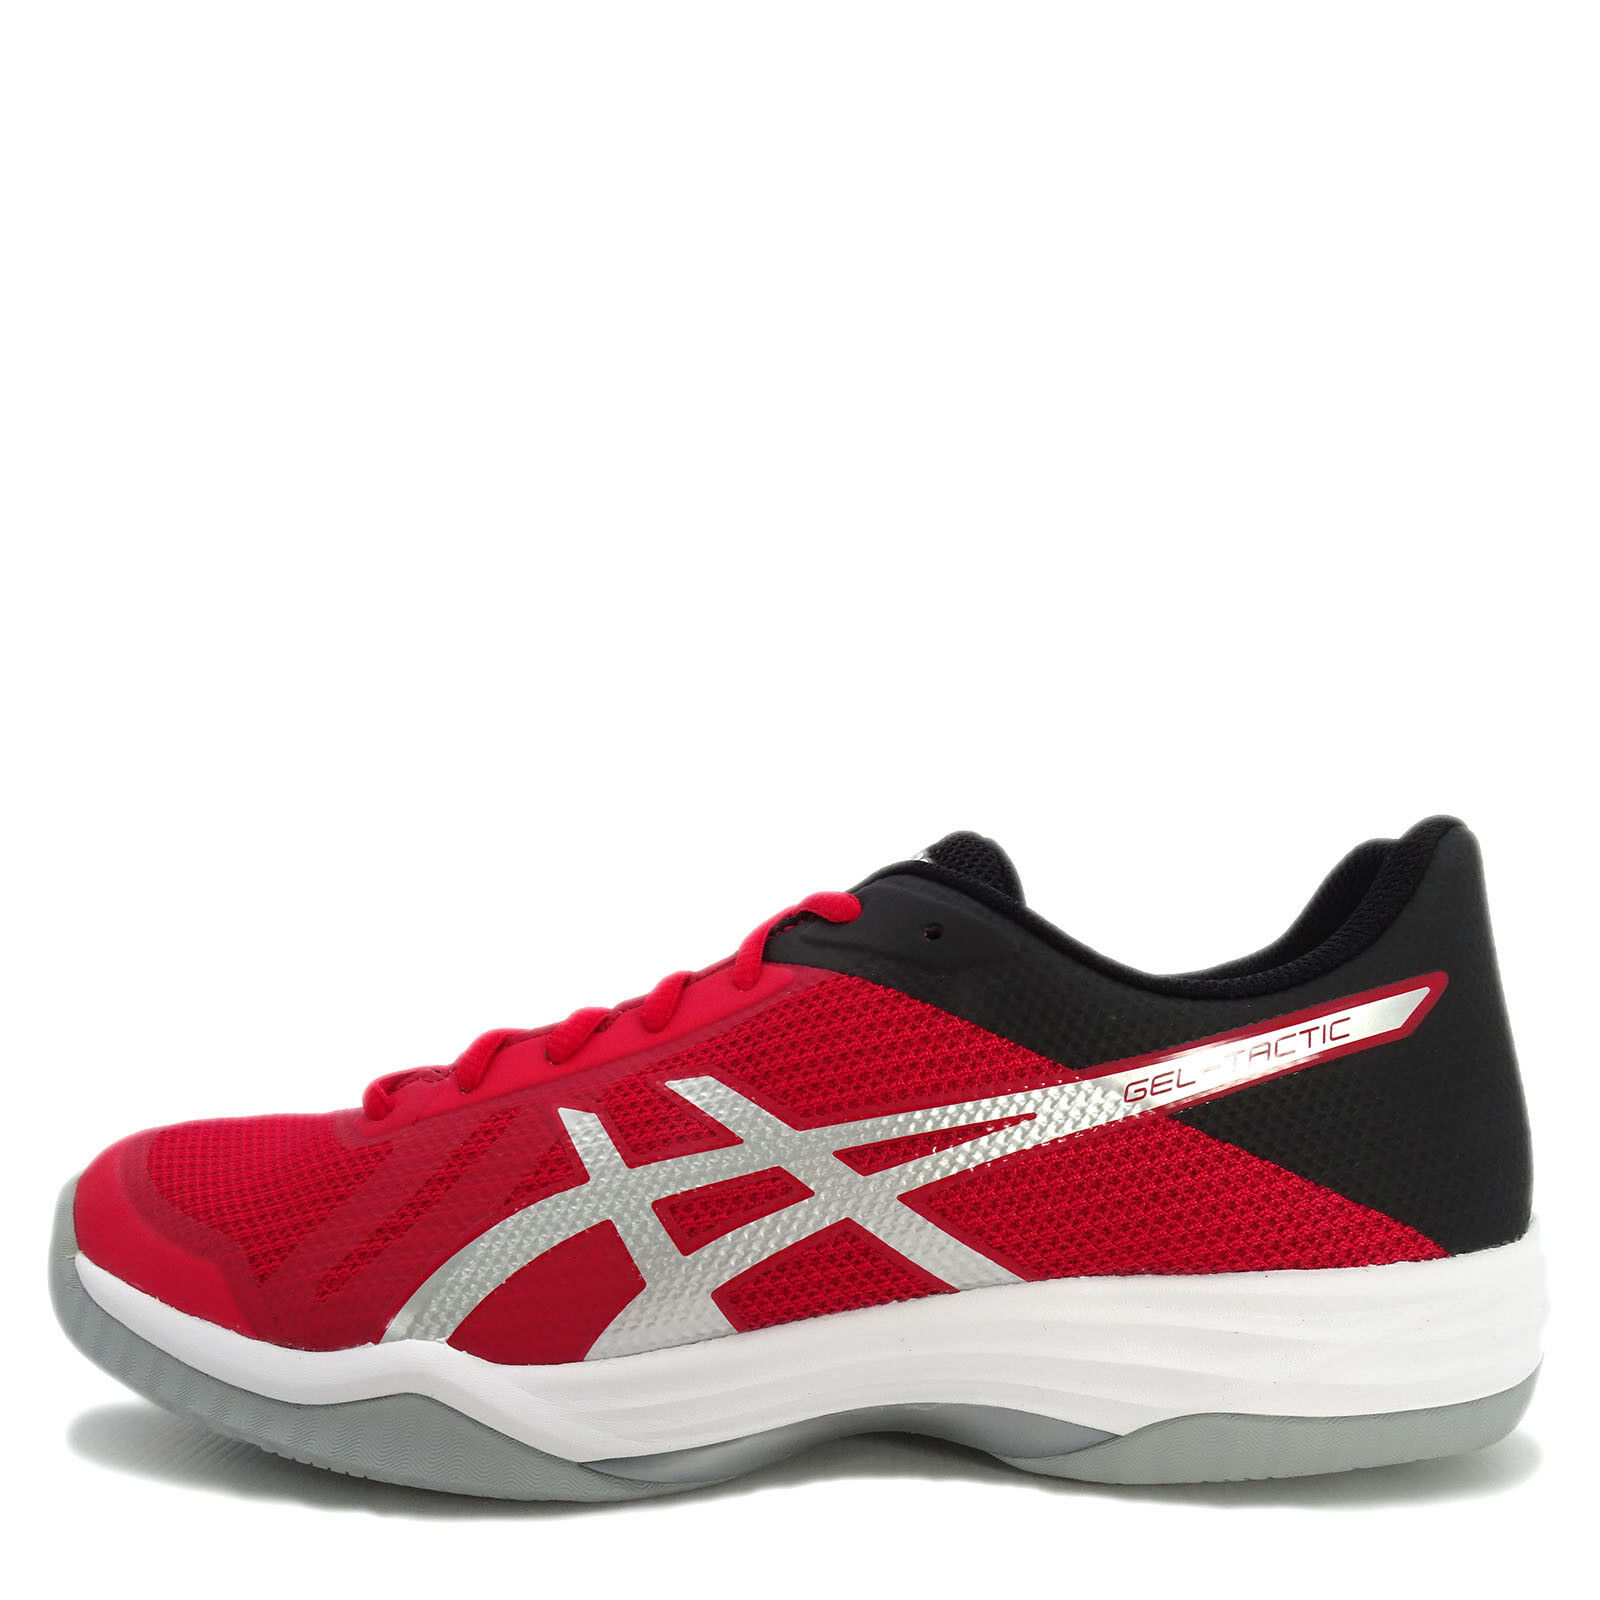 Asics GEL-Tactic [B702N-2393] Men Volleyball Badminton Shoes Red/Silver-Black